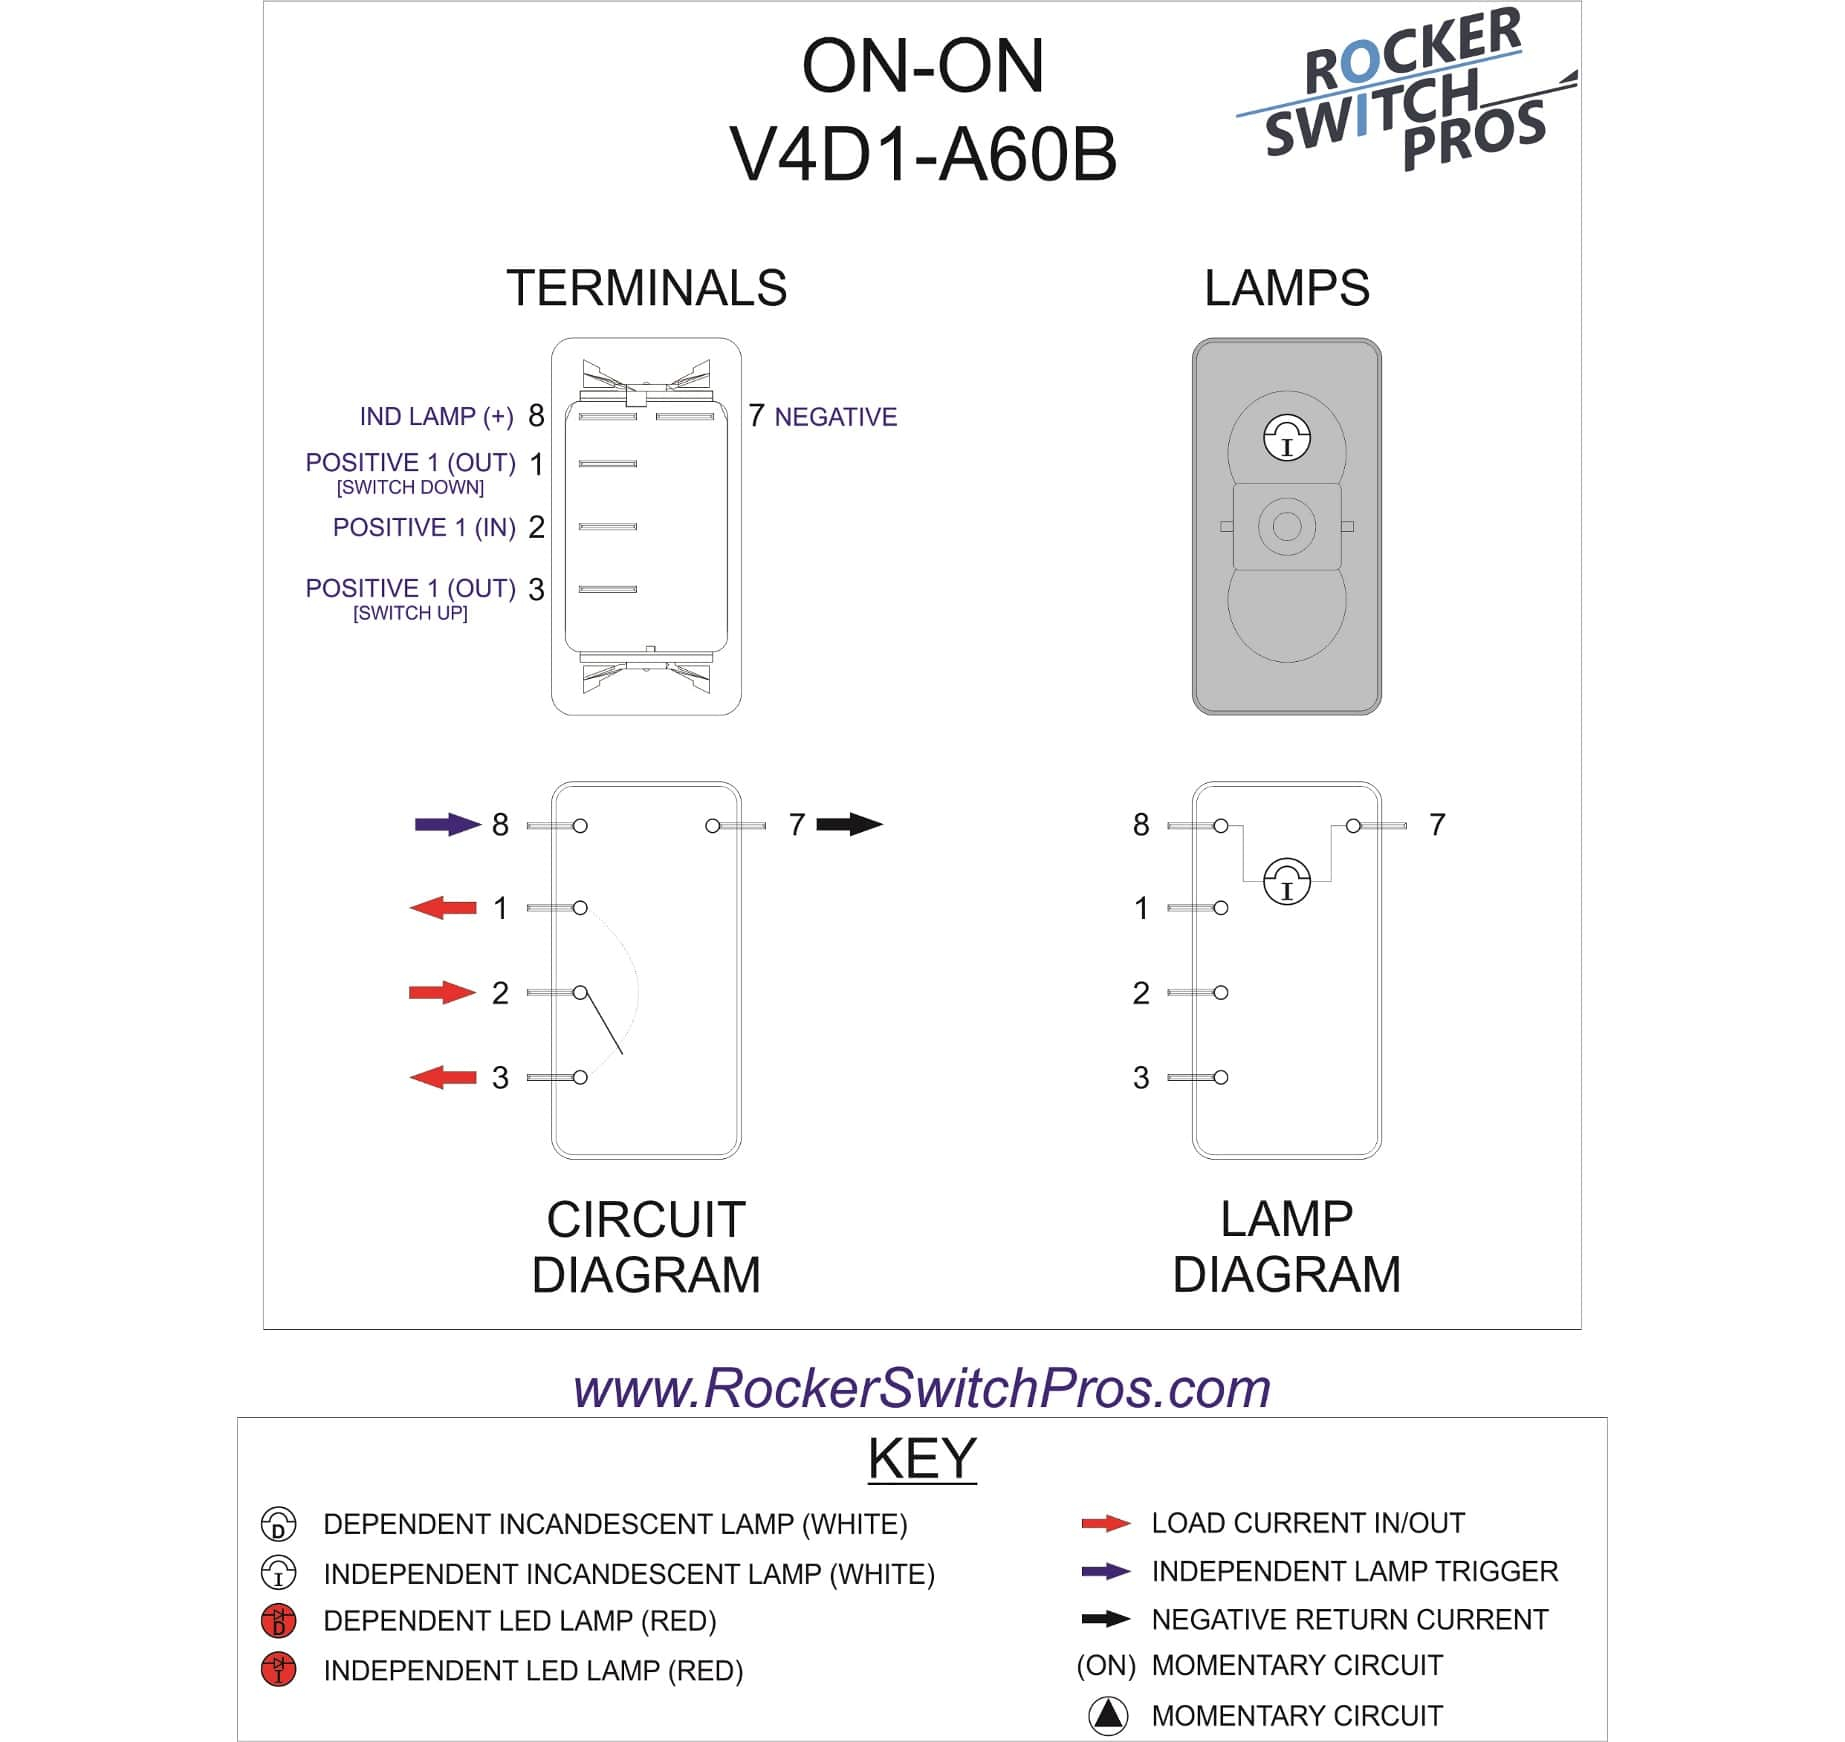 spdt rocker switch wiring diagram Collection-WIRING DIAGRAM 15 ON Rocker  Switch Ind Lamp Three. DOWNLOAD. Wiring Diagram ...